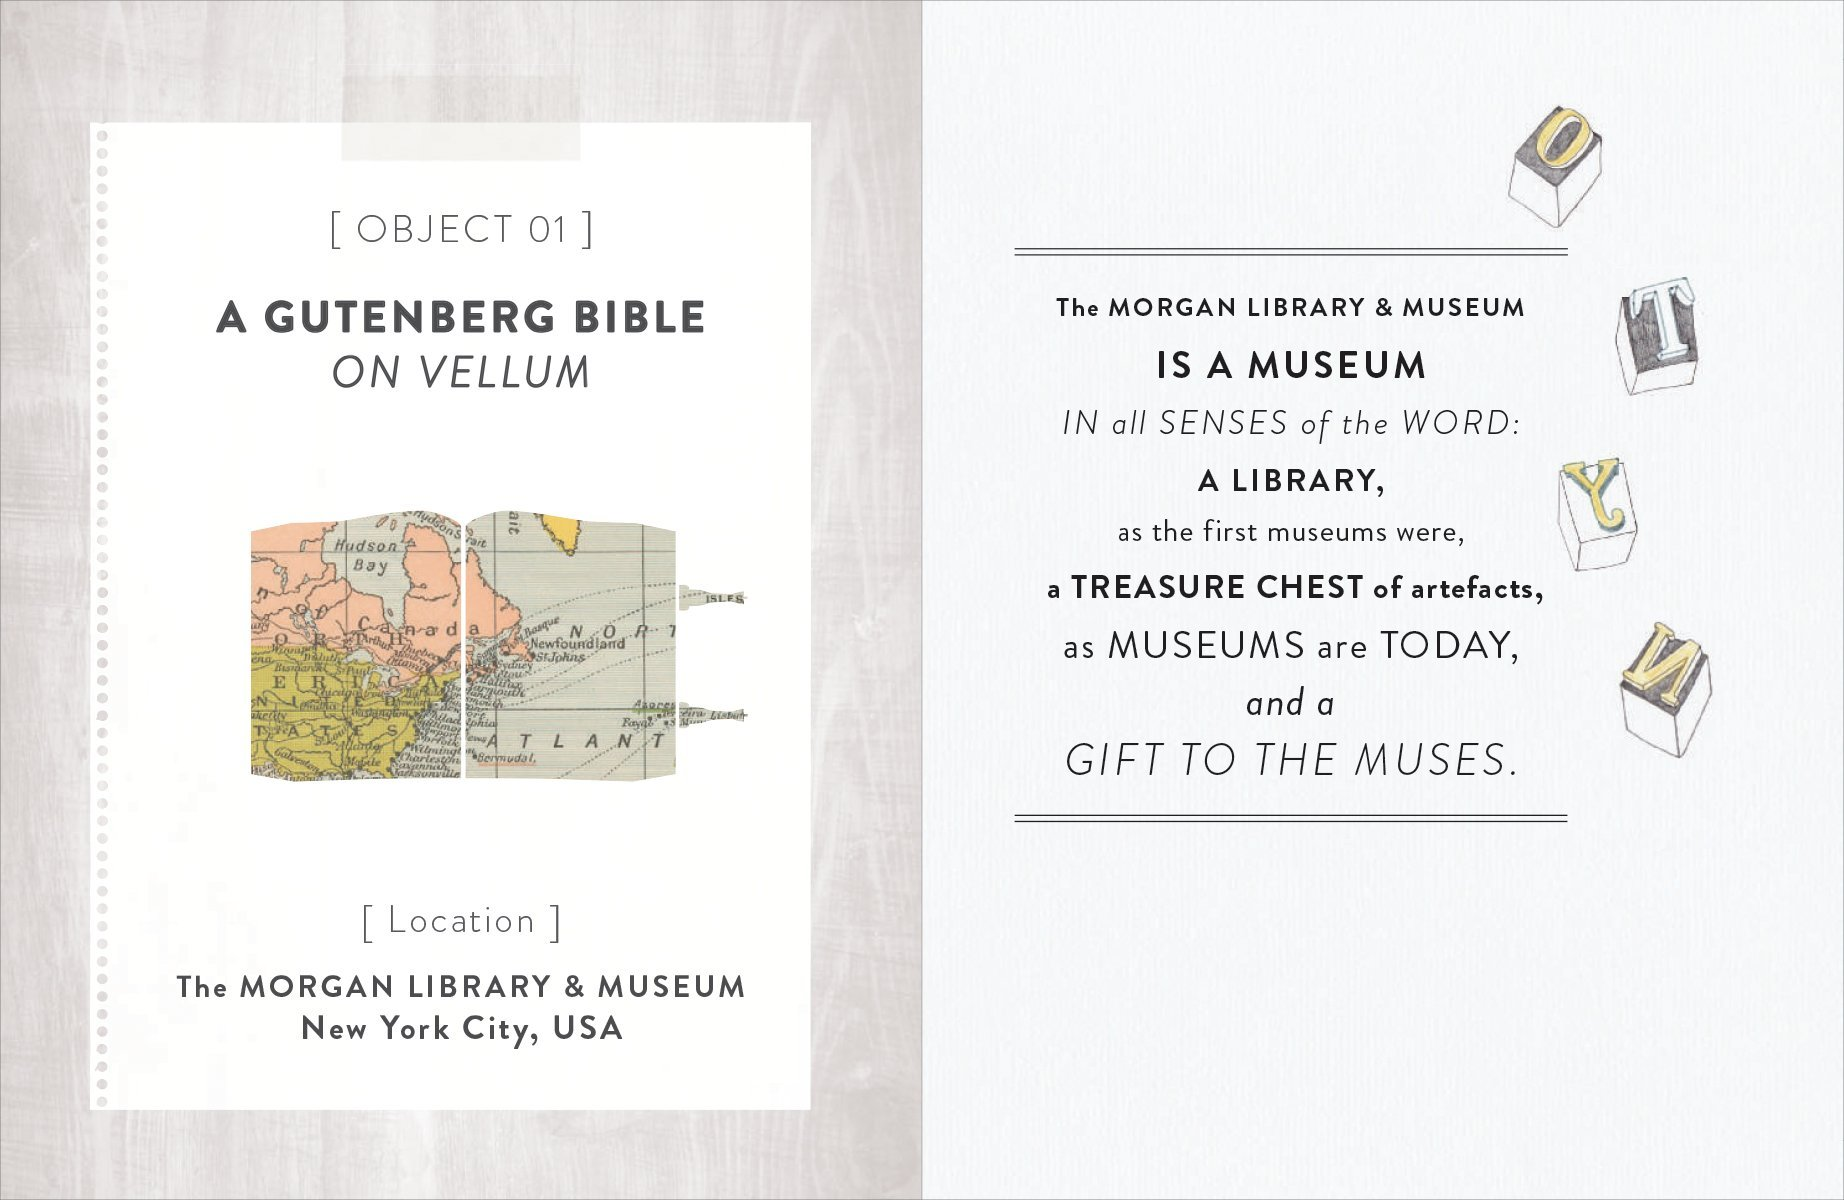 The Secret Museum Some Treasures Are Too Precious To Display Morgan Wiring Diagram Molly Oldfield 9781770852570 Books